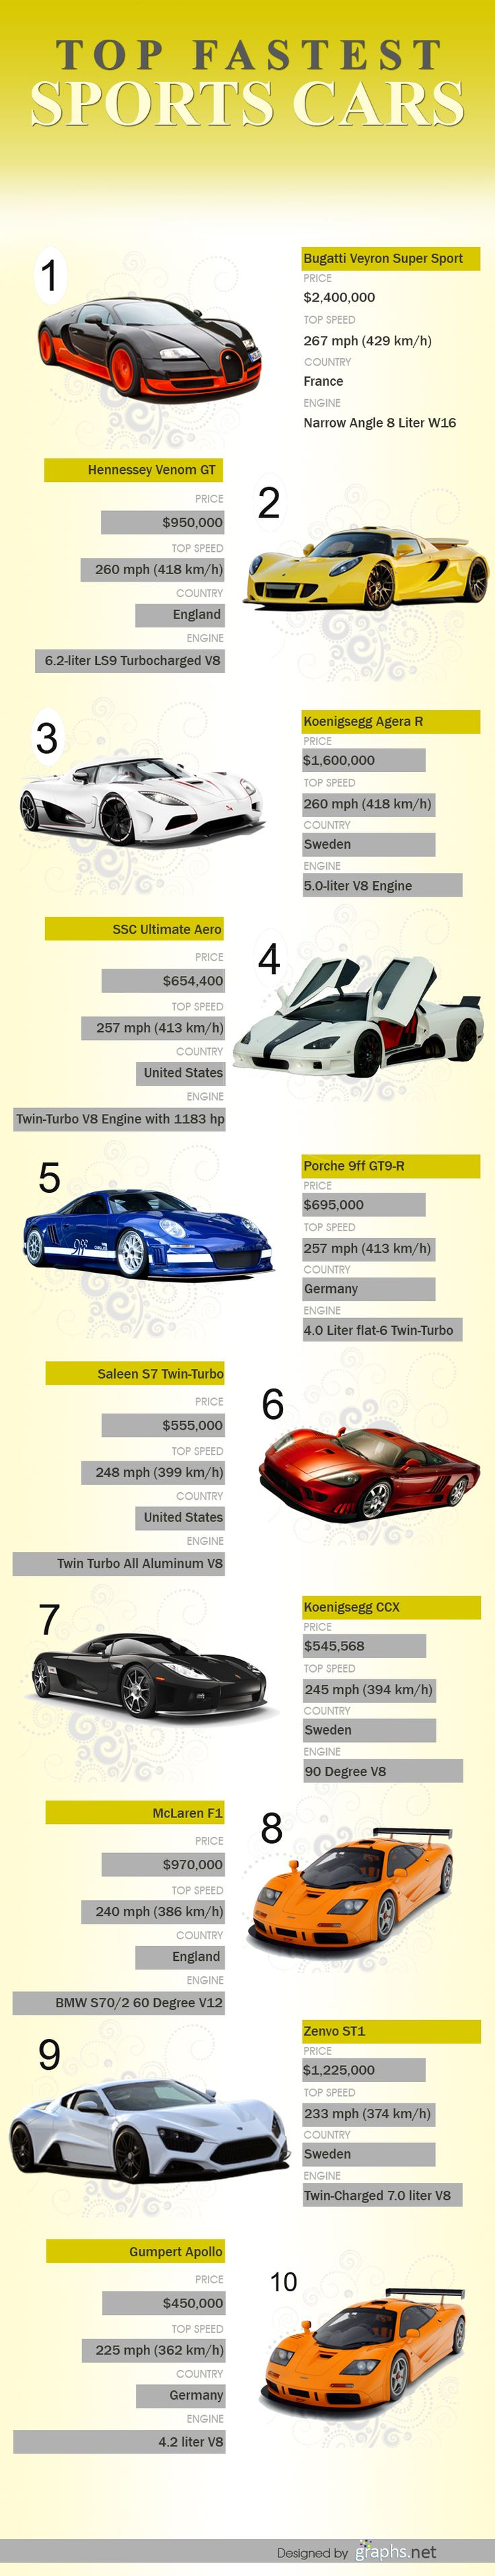 Top 10 Fastest Sports Cars.... Some of these are a little off now but, you get the idea.